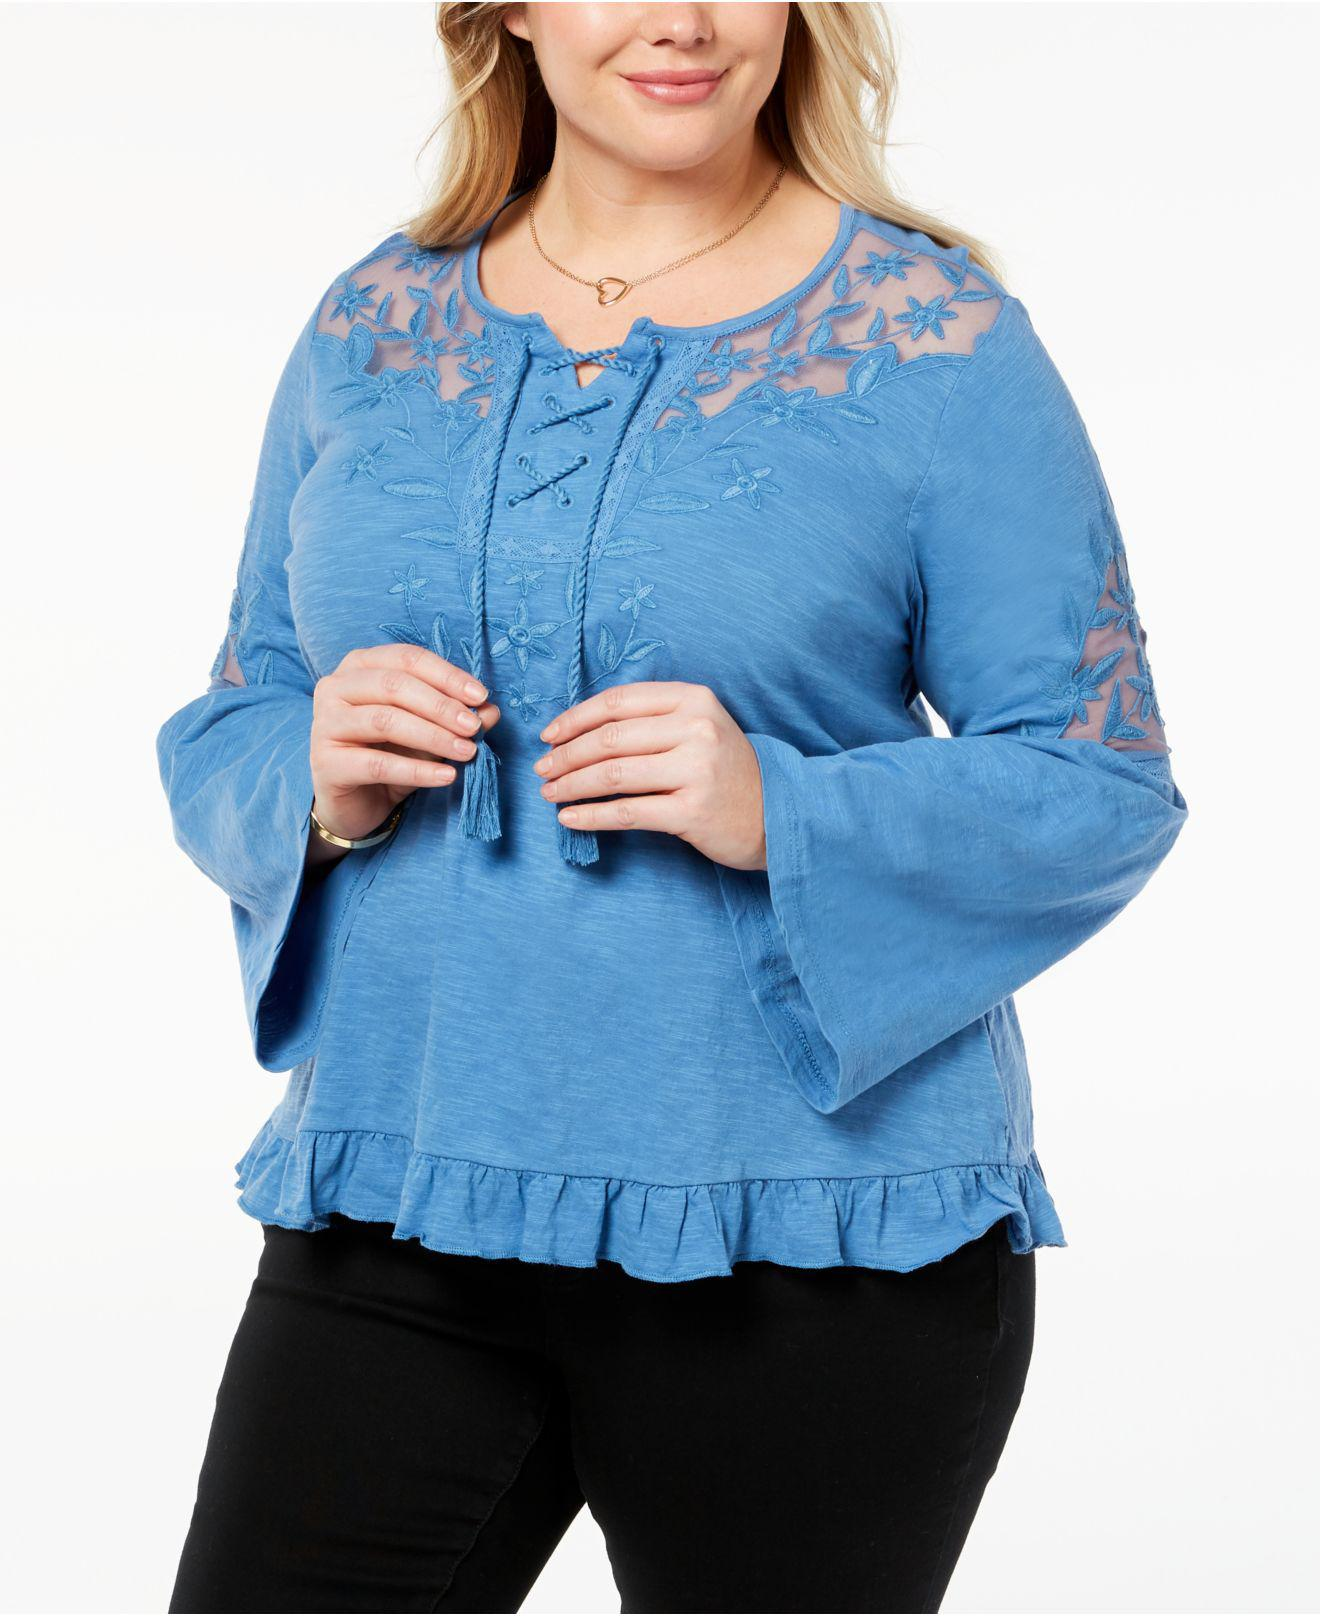 17843d7219d88 Lyst - Style   Co. Plus Size Lace-up Embroidered Peasant Top ...